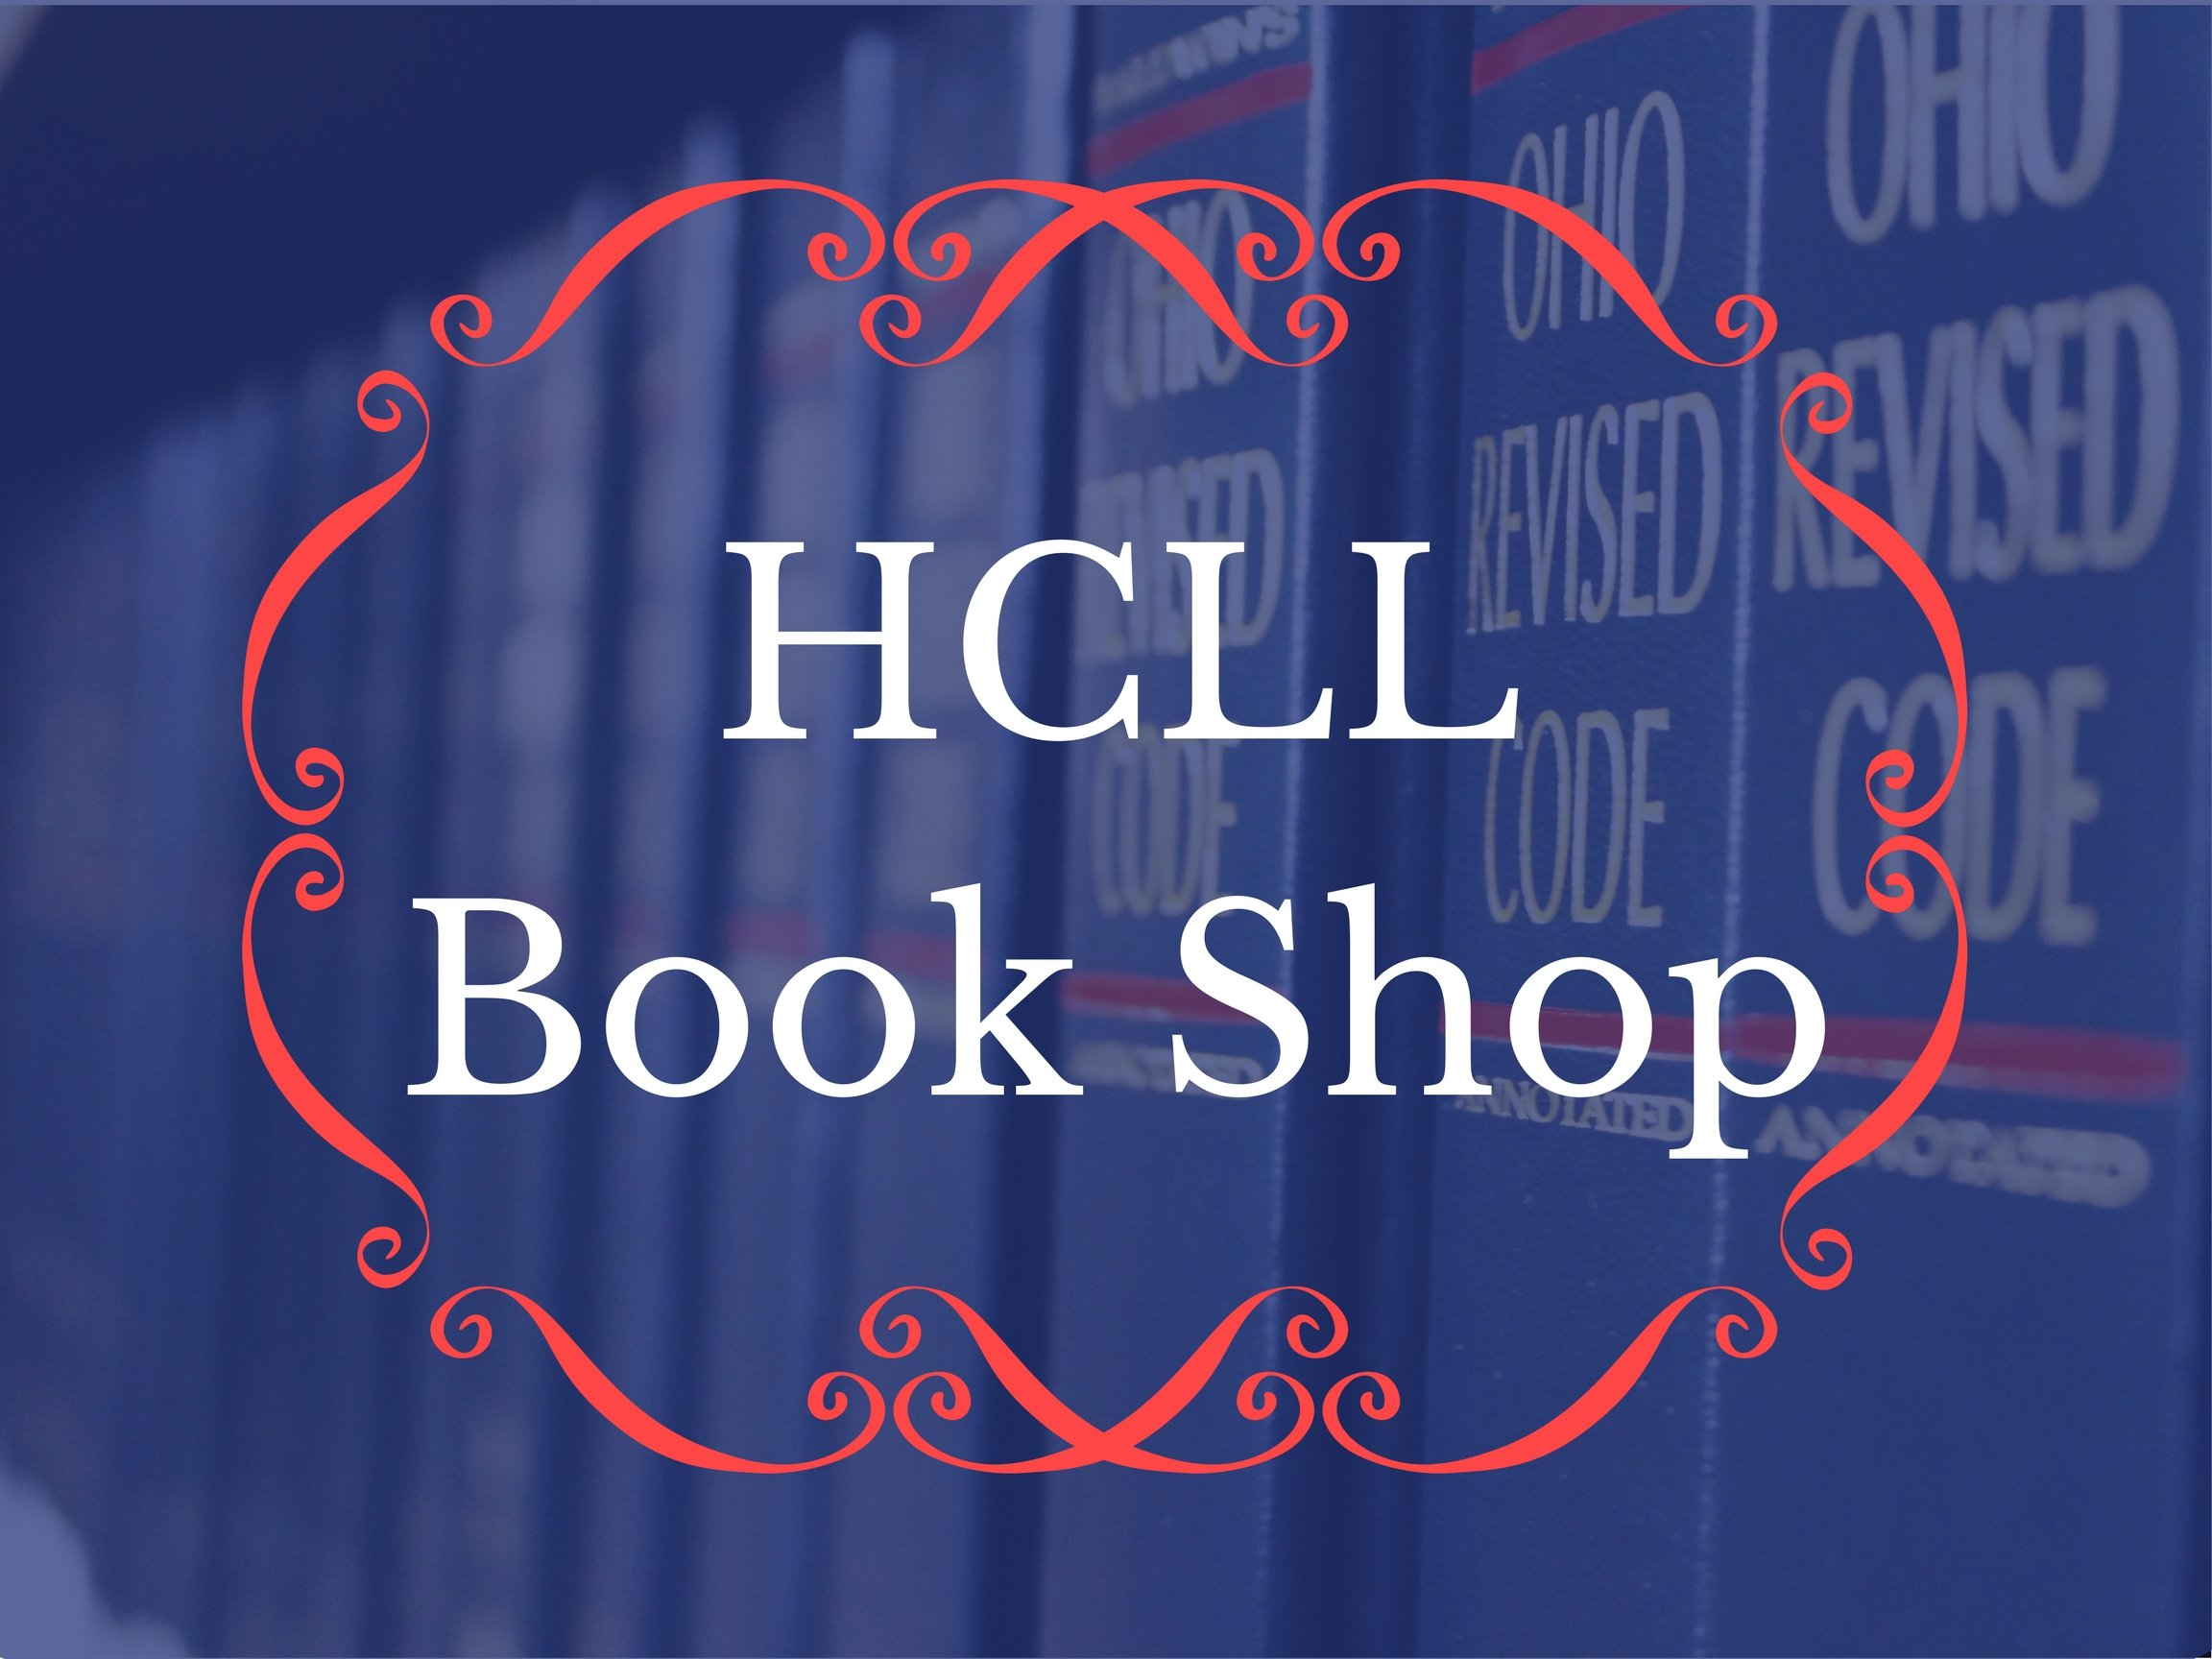 Coming Soon – The HCLL Book Shop!